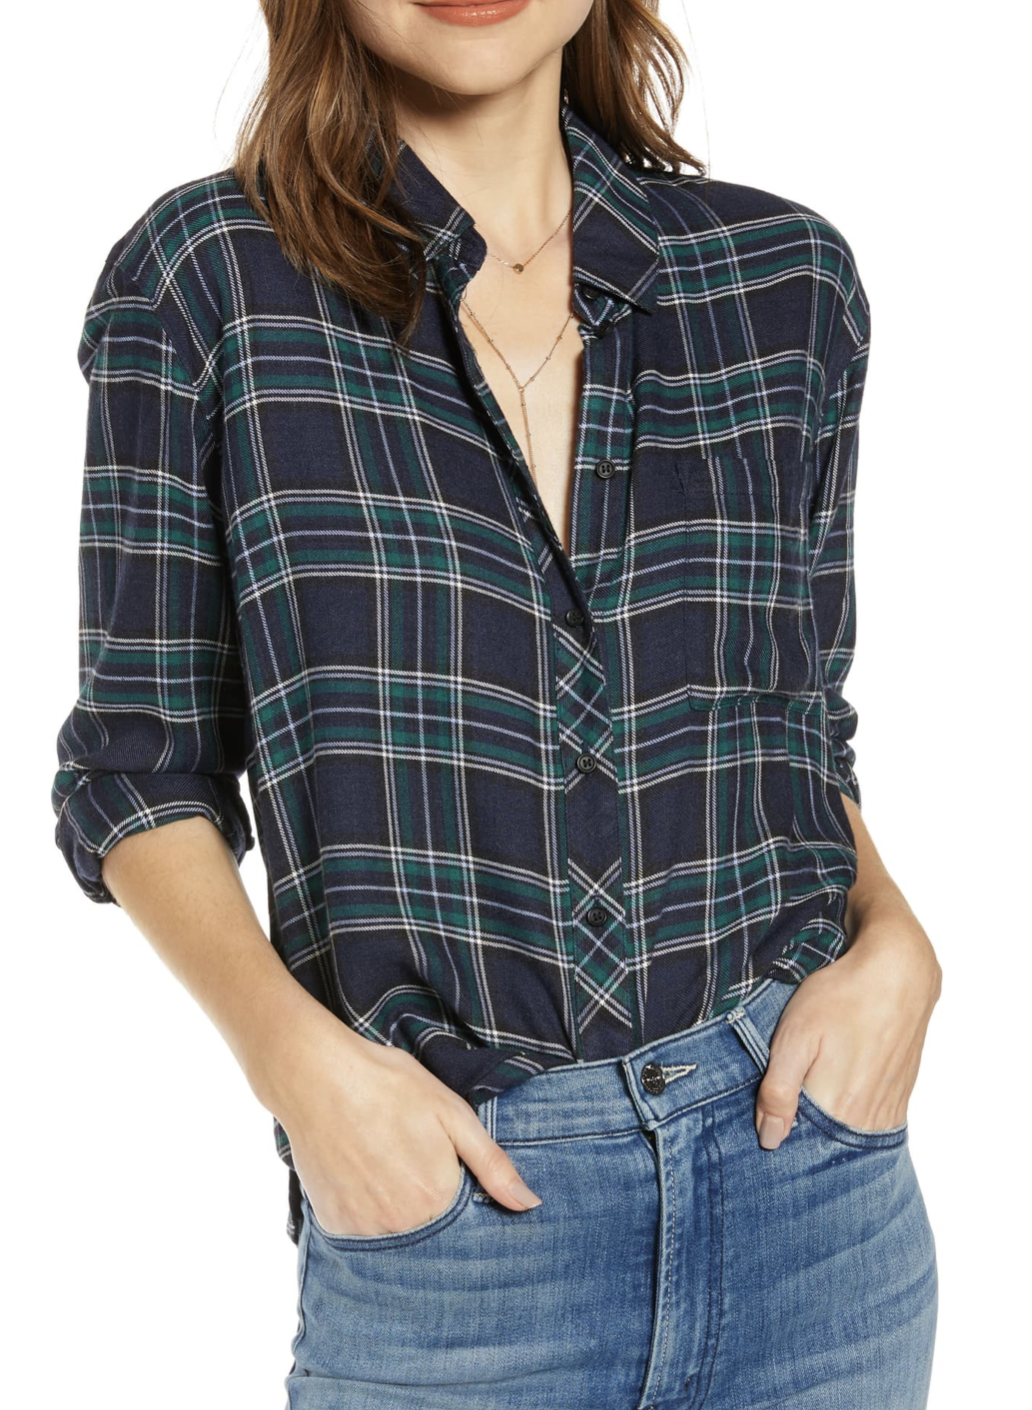 Treasure & Bond Plaid Boyfriend Shirt - $45.90